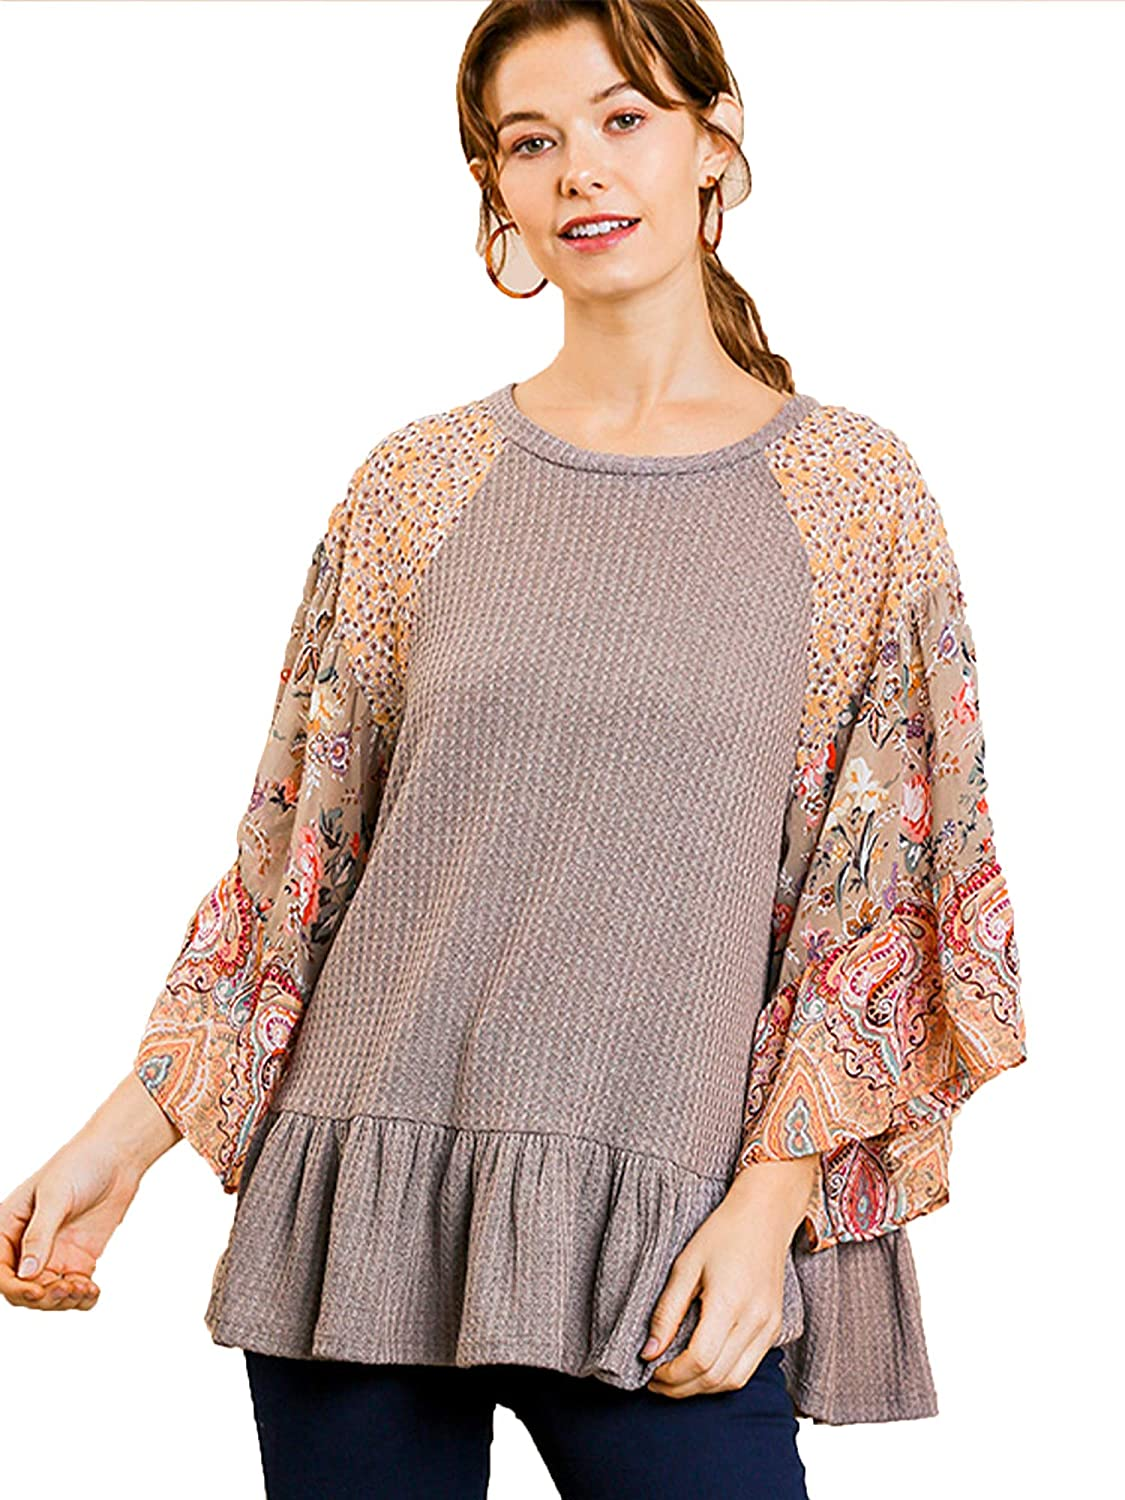 Umgee Women's Challenge the lowest price Waffle Knit Top Department store Print Sleeves Ruffle Floral with